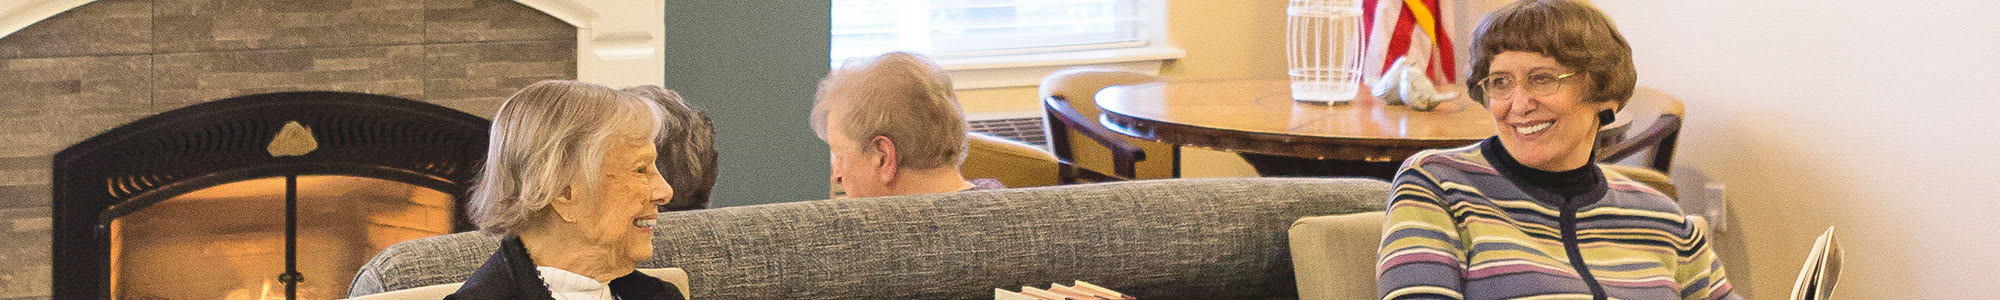 Life Enrichment Activities at King's Manor Senior Living Community